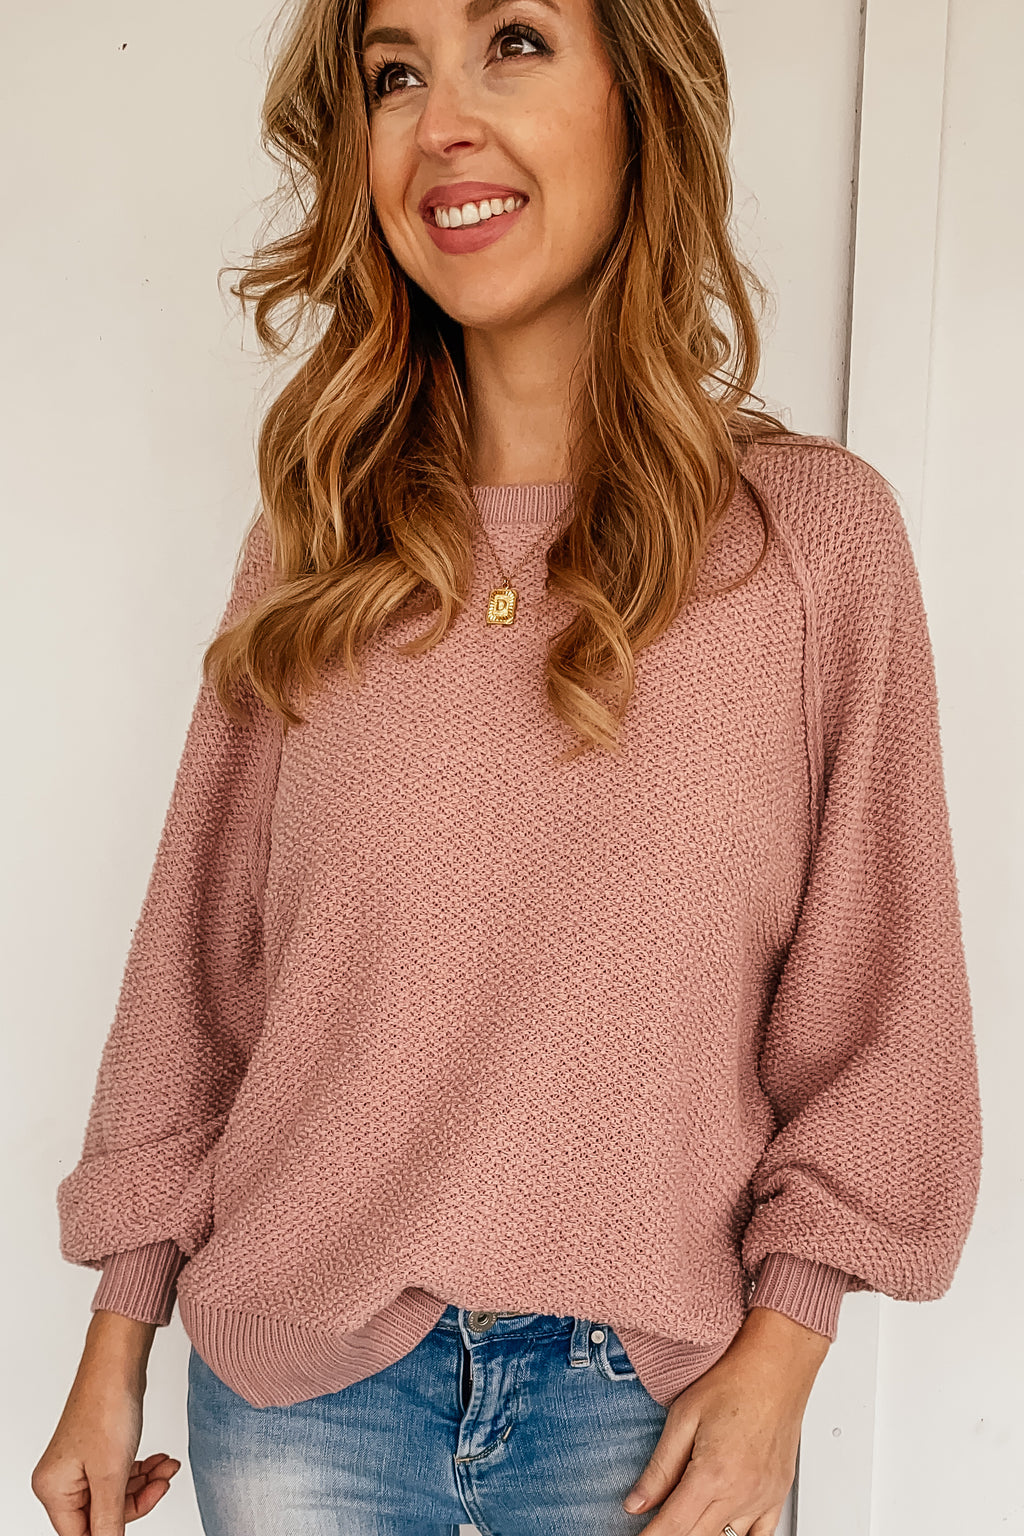 Stephanie Textured Sweater in Blush